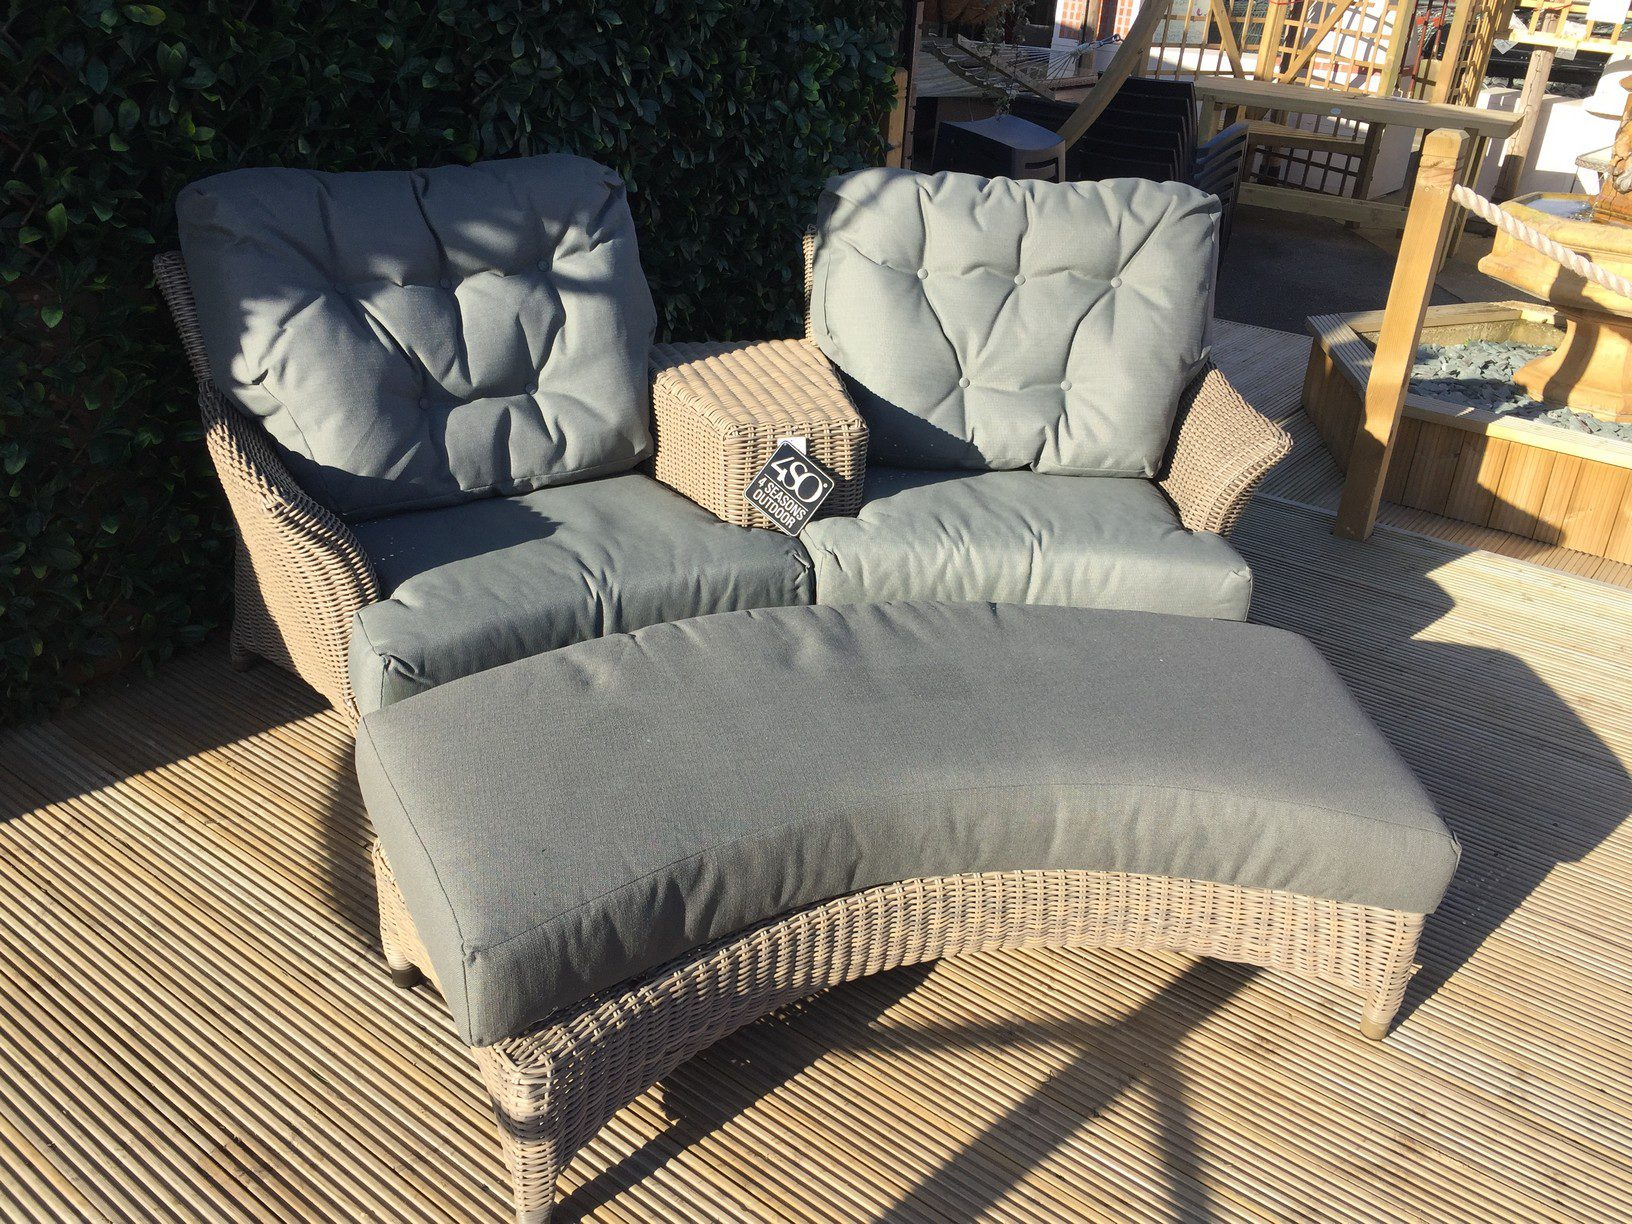 4 Seasons Outdoor Valentine Love Seat With Footrest 15